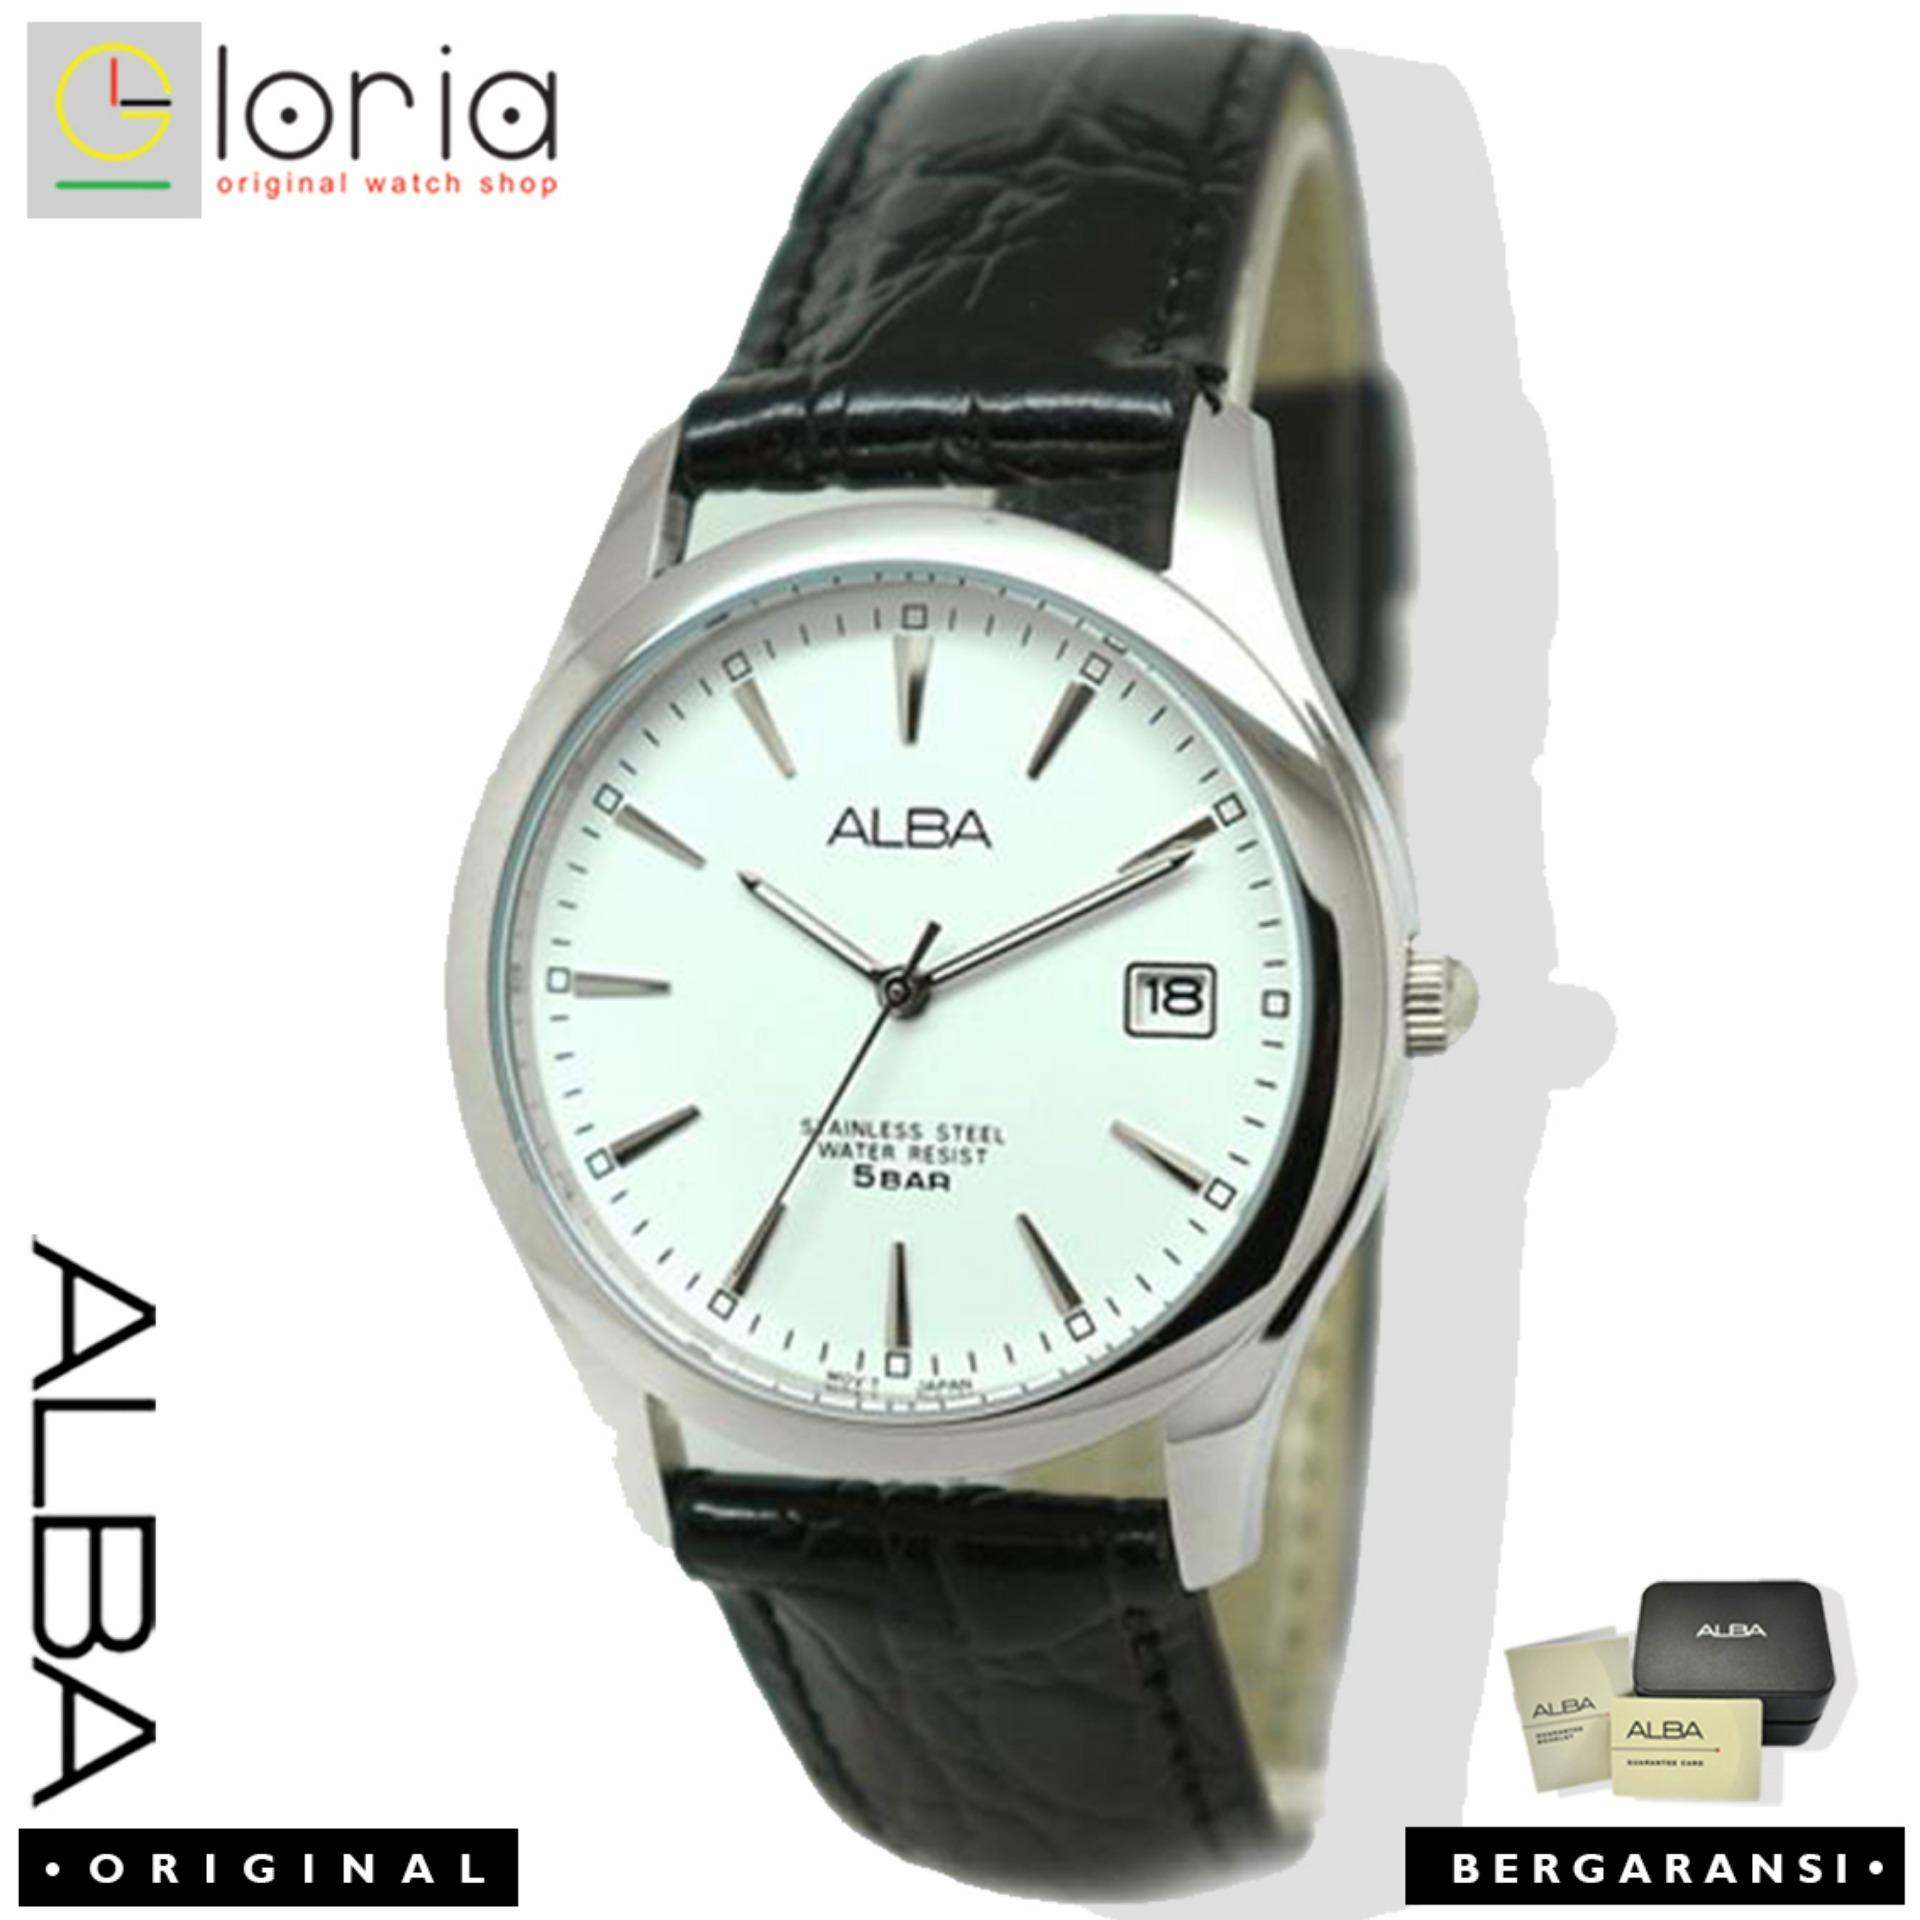 Alba Analog AXHL65X1 Jam Tangan Pria - Strap Leather - White Black